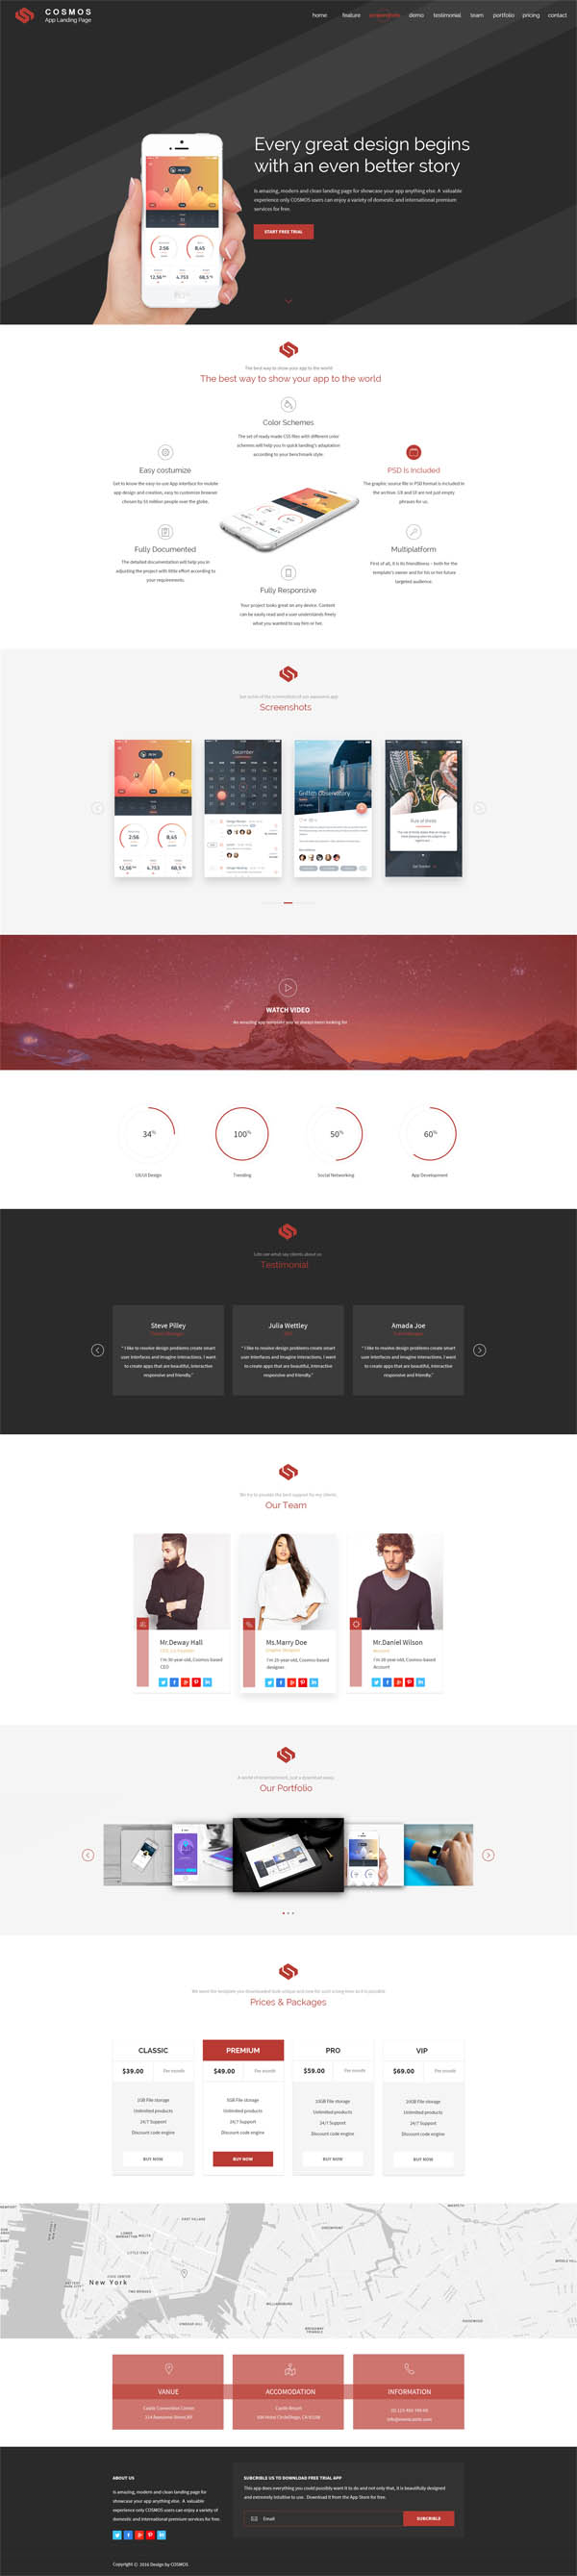 wordpress themes, responsive design, flat design